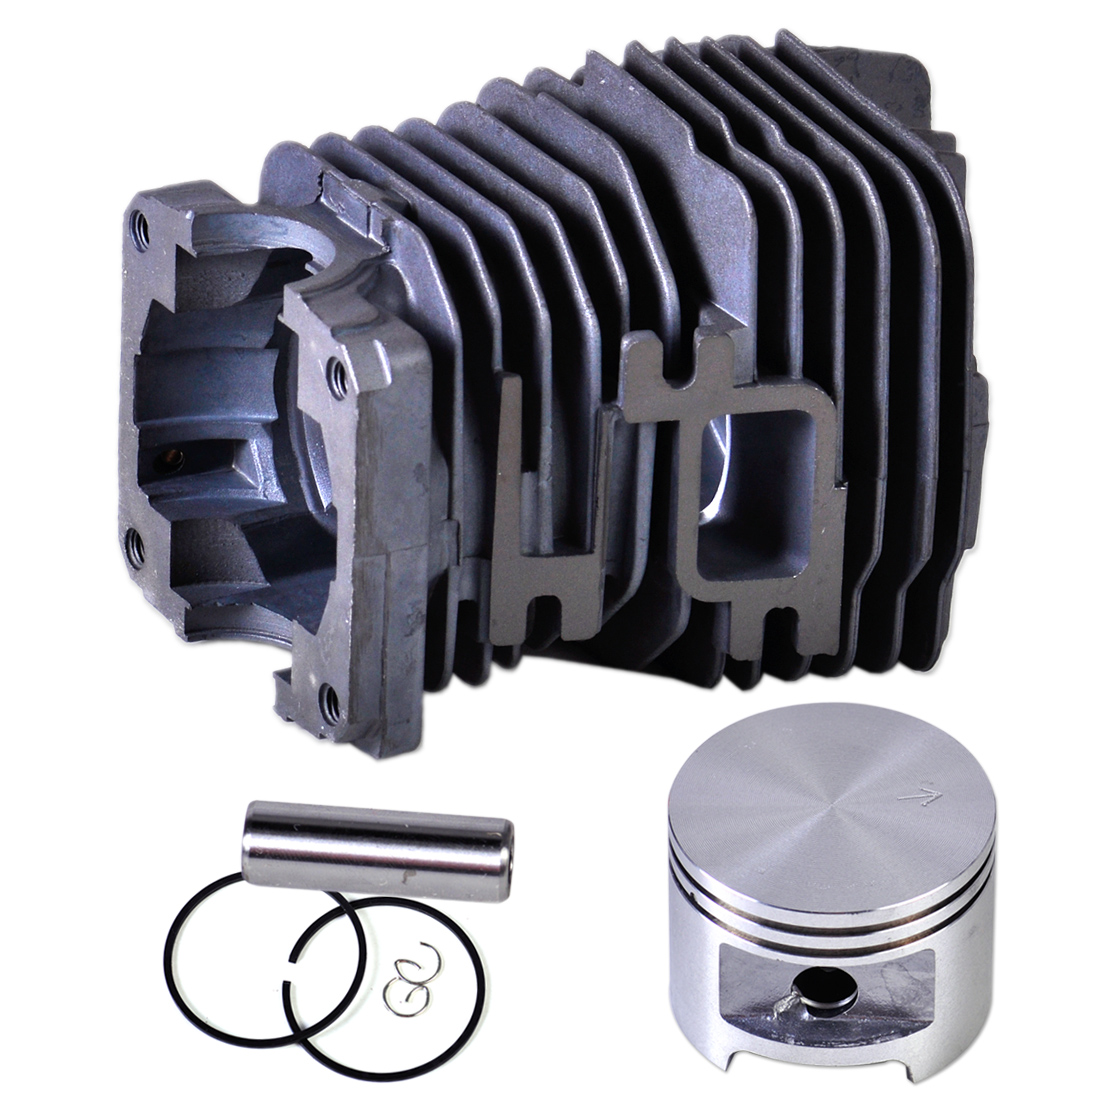 LETAOSK New 49mm Cylinder Piston kit fit for Stihl MS390 MS290 MS310 029 039 47mm cylinder piston kit for stihl ms310 ms 310 rep 1127 020 1218